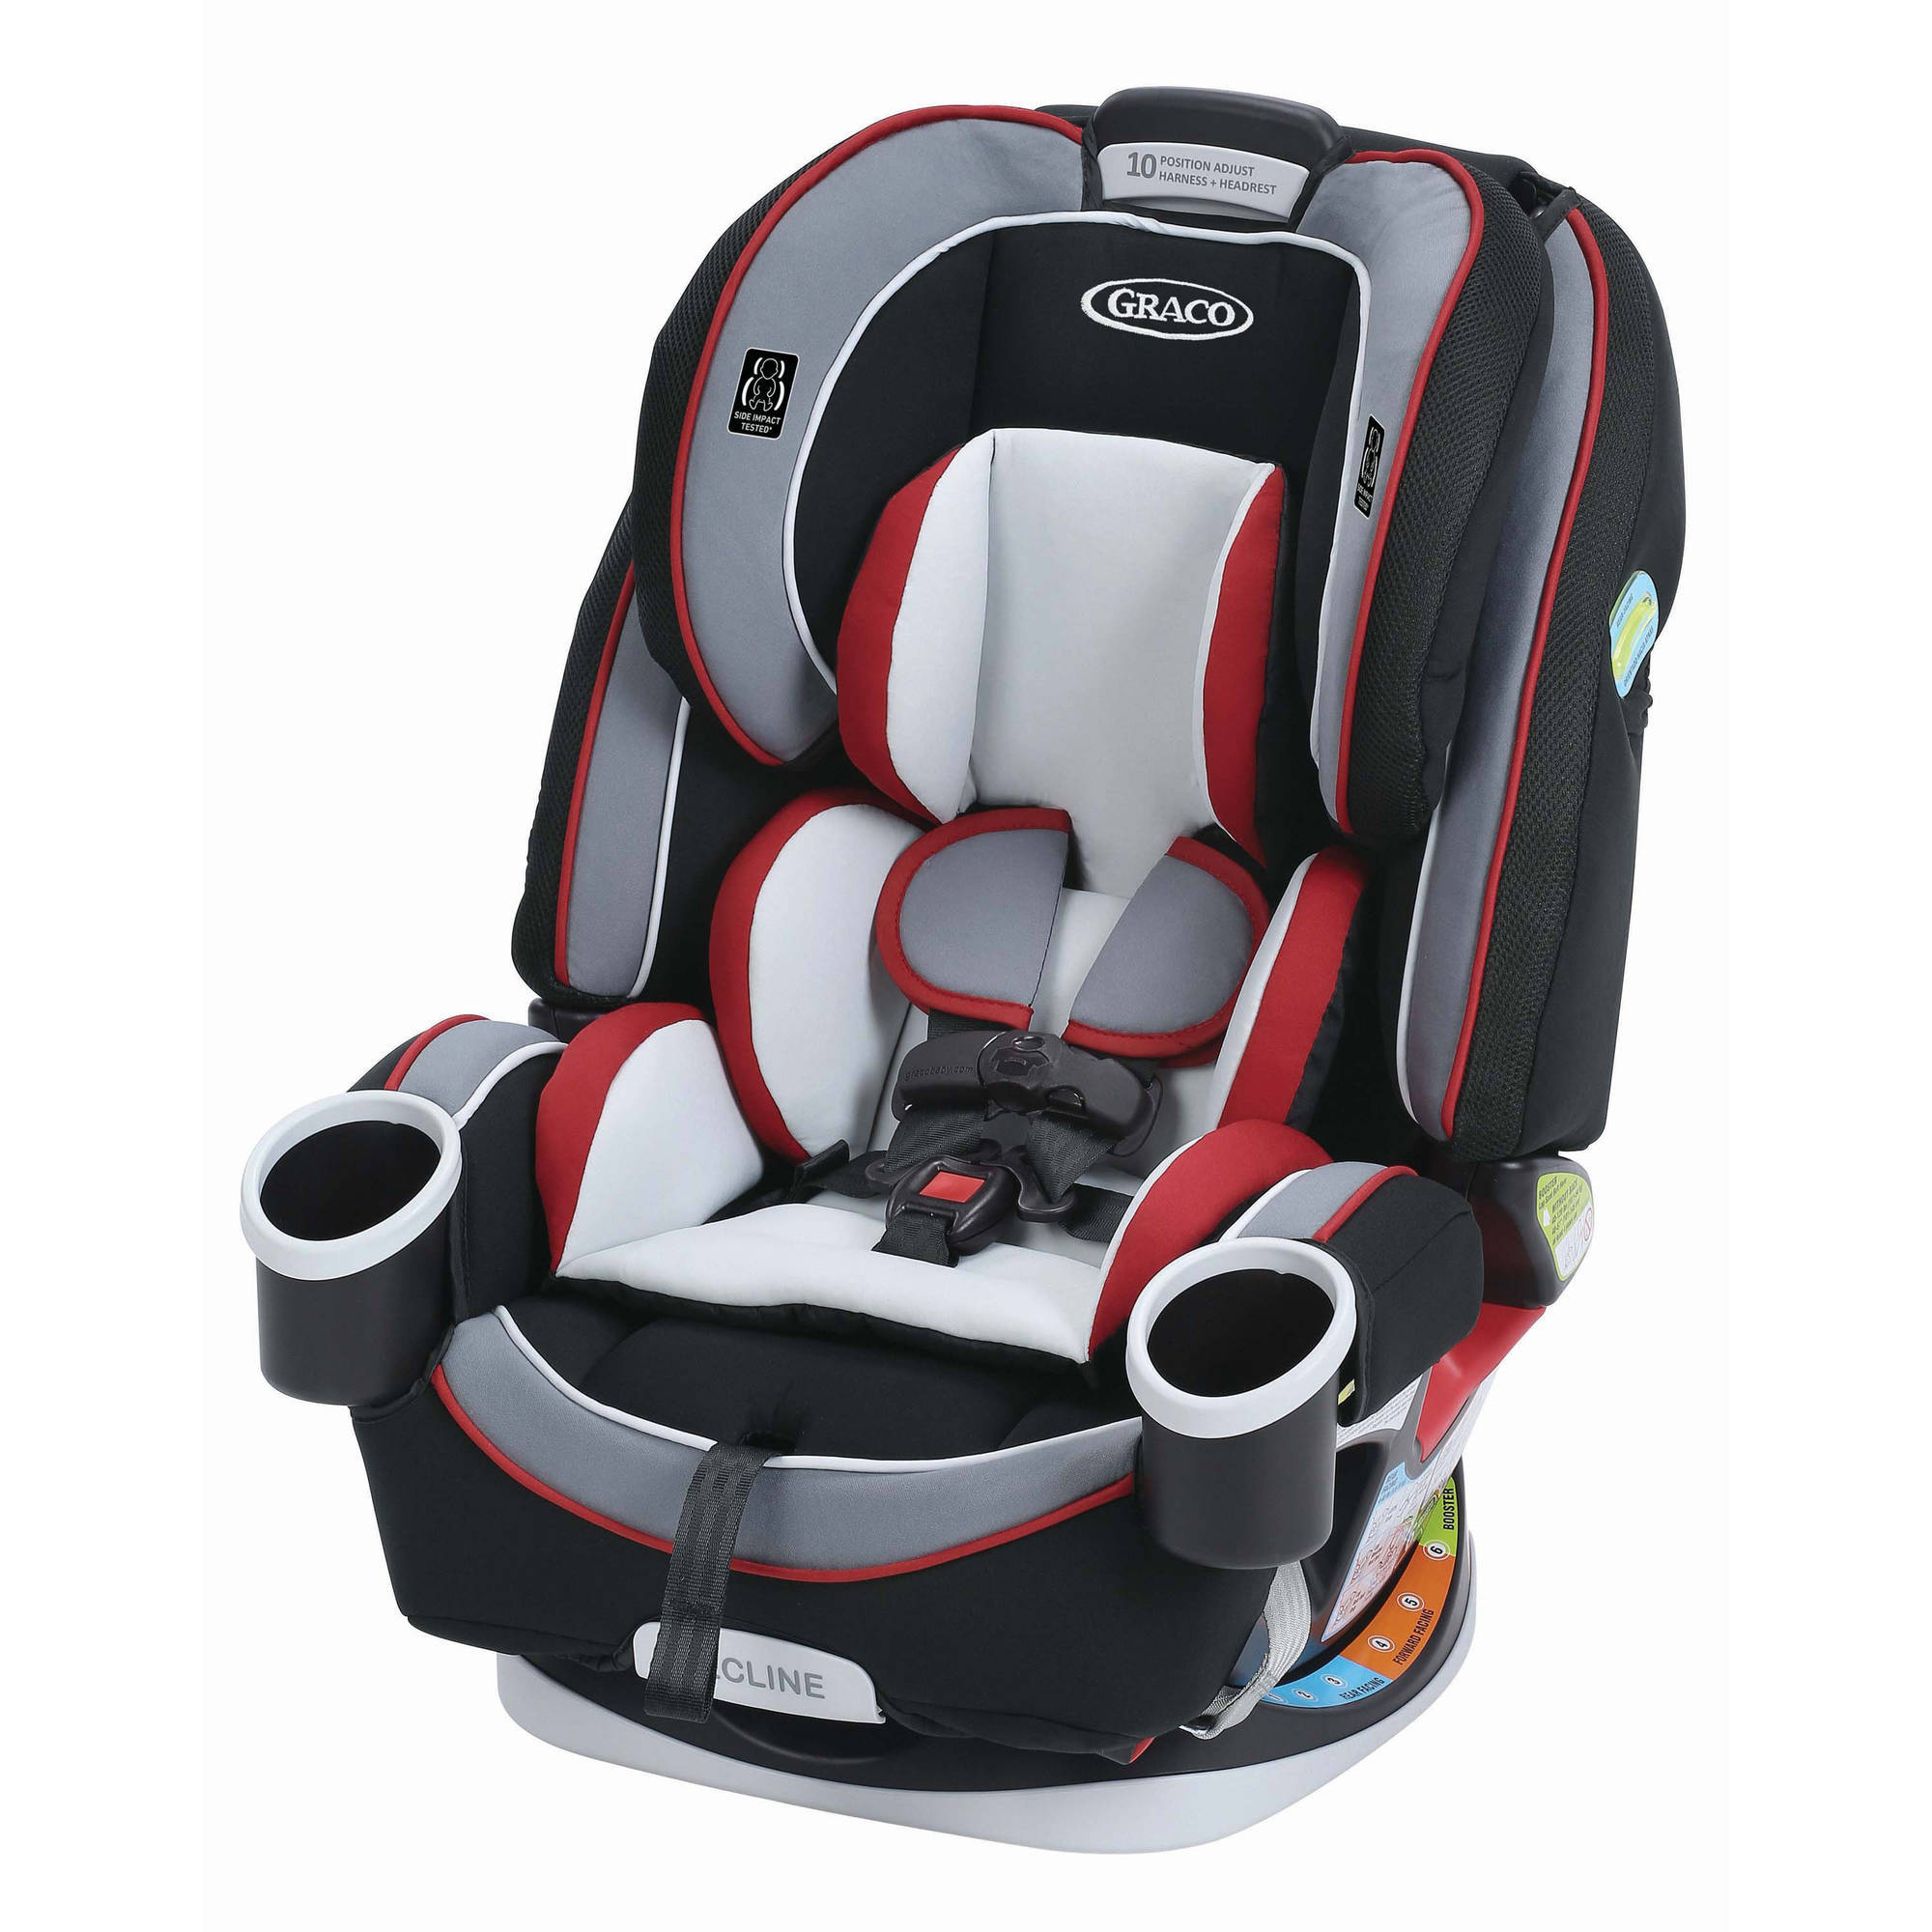 Graco 4Ever All-in-1 Convertible Car Seat, Cougar